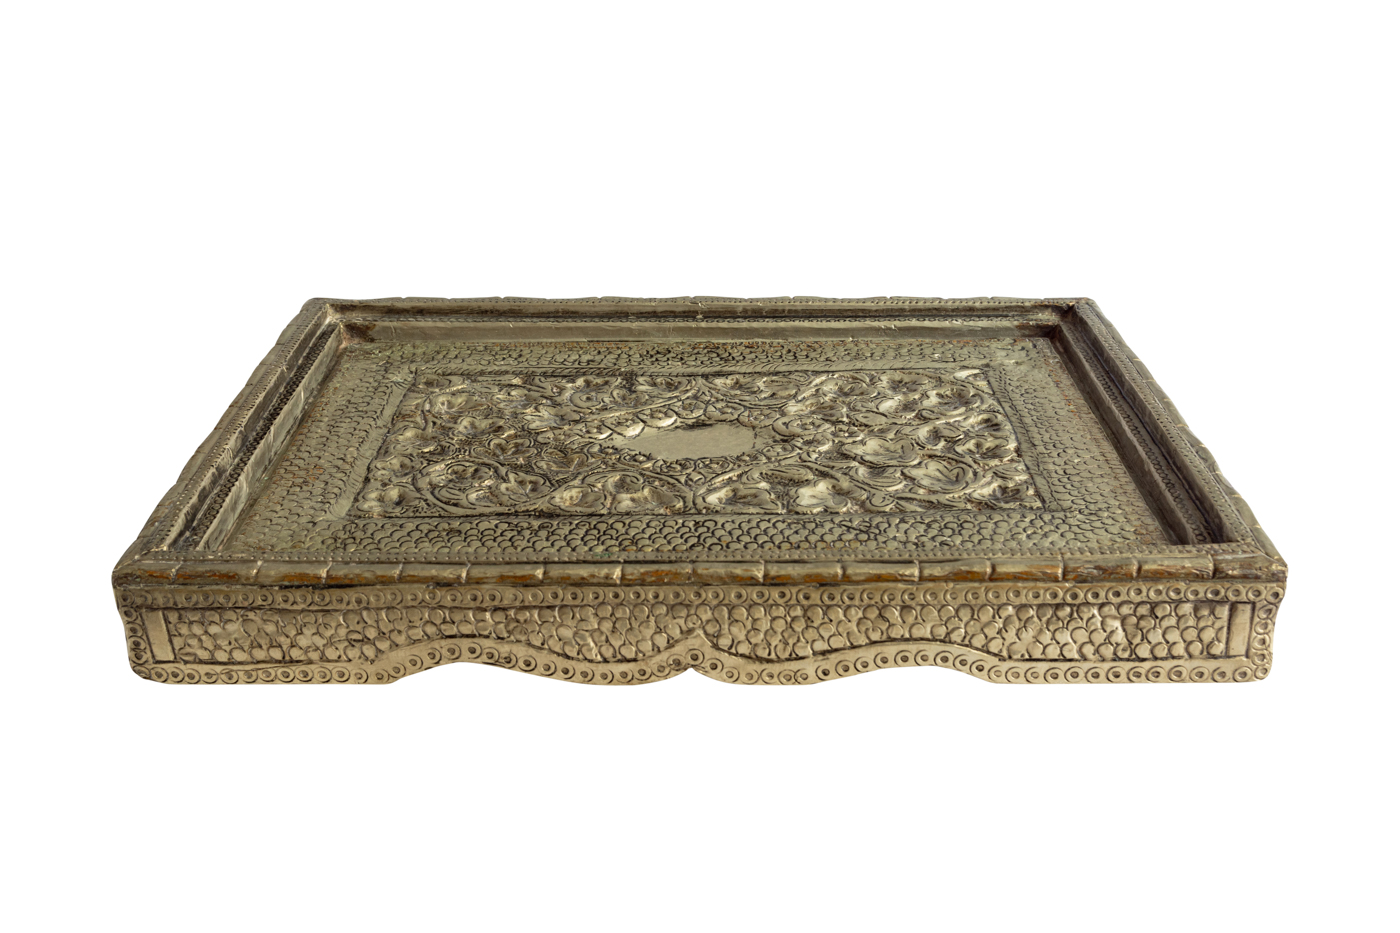 Rectangular carved tray